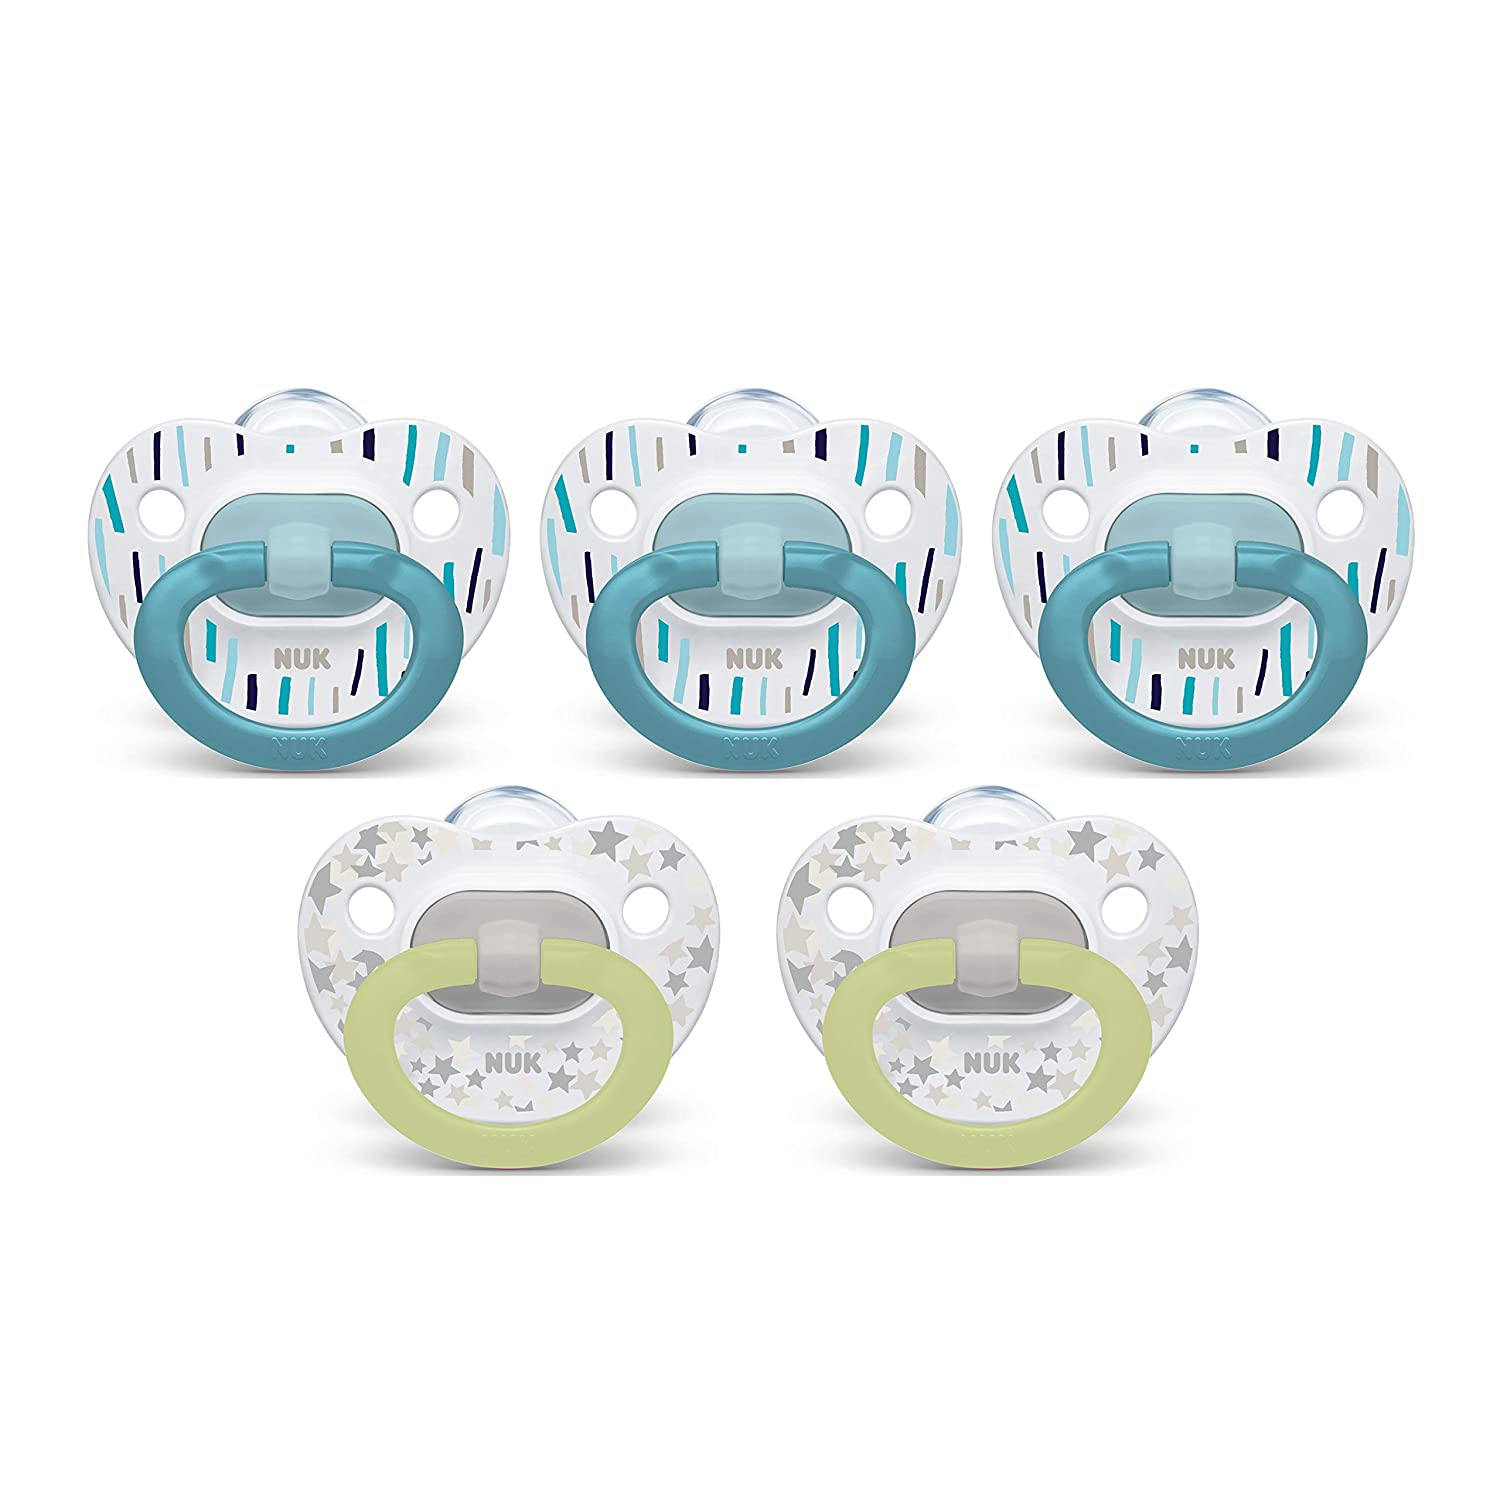 NUK Orthodontic Pacifiers, 0-6 Months, 5-Pack